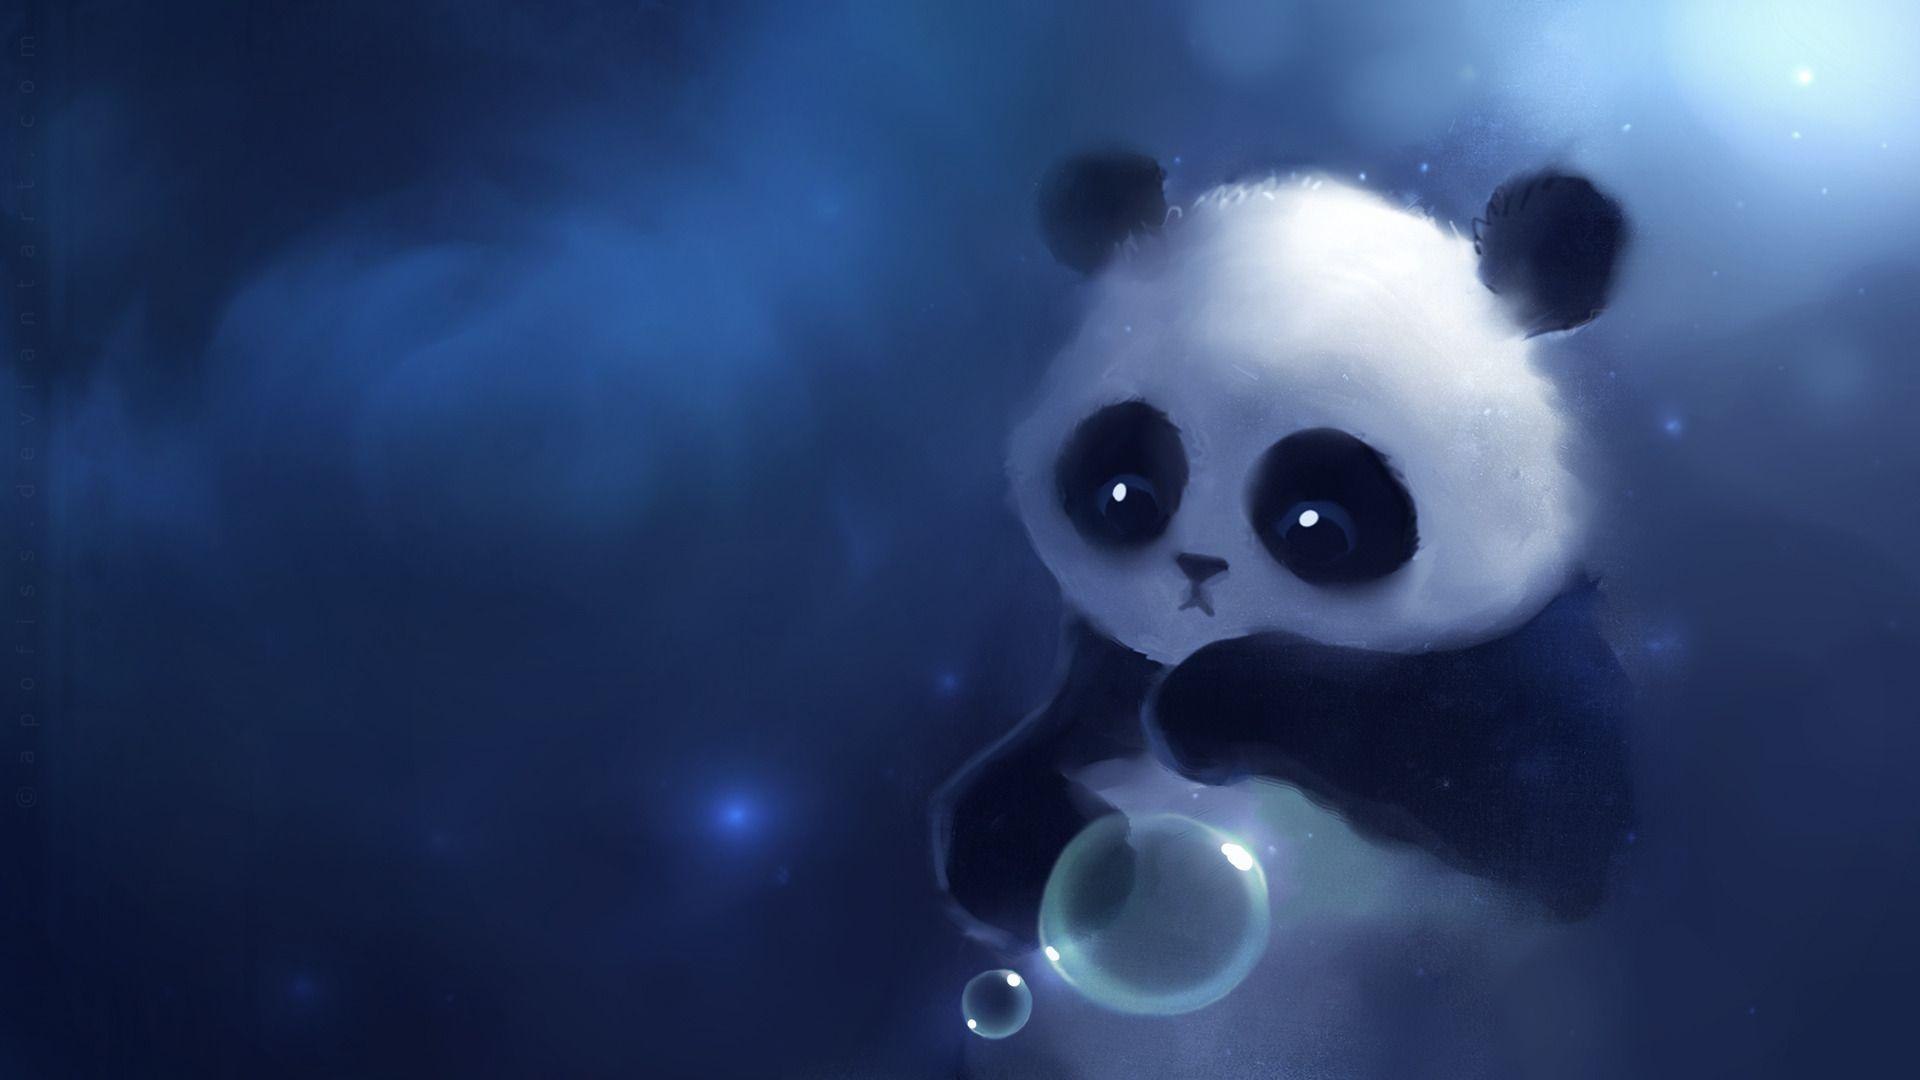 Cute Panda Backgrounds Wallpaper Cave